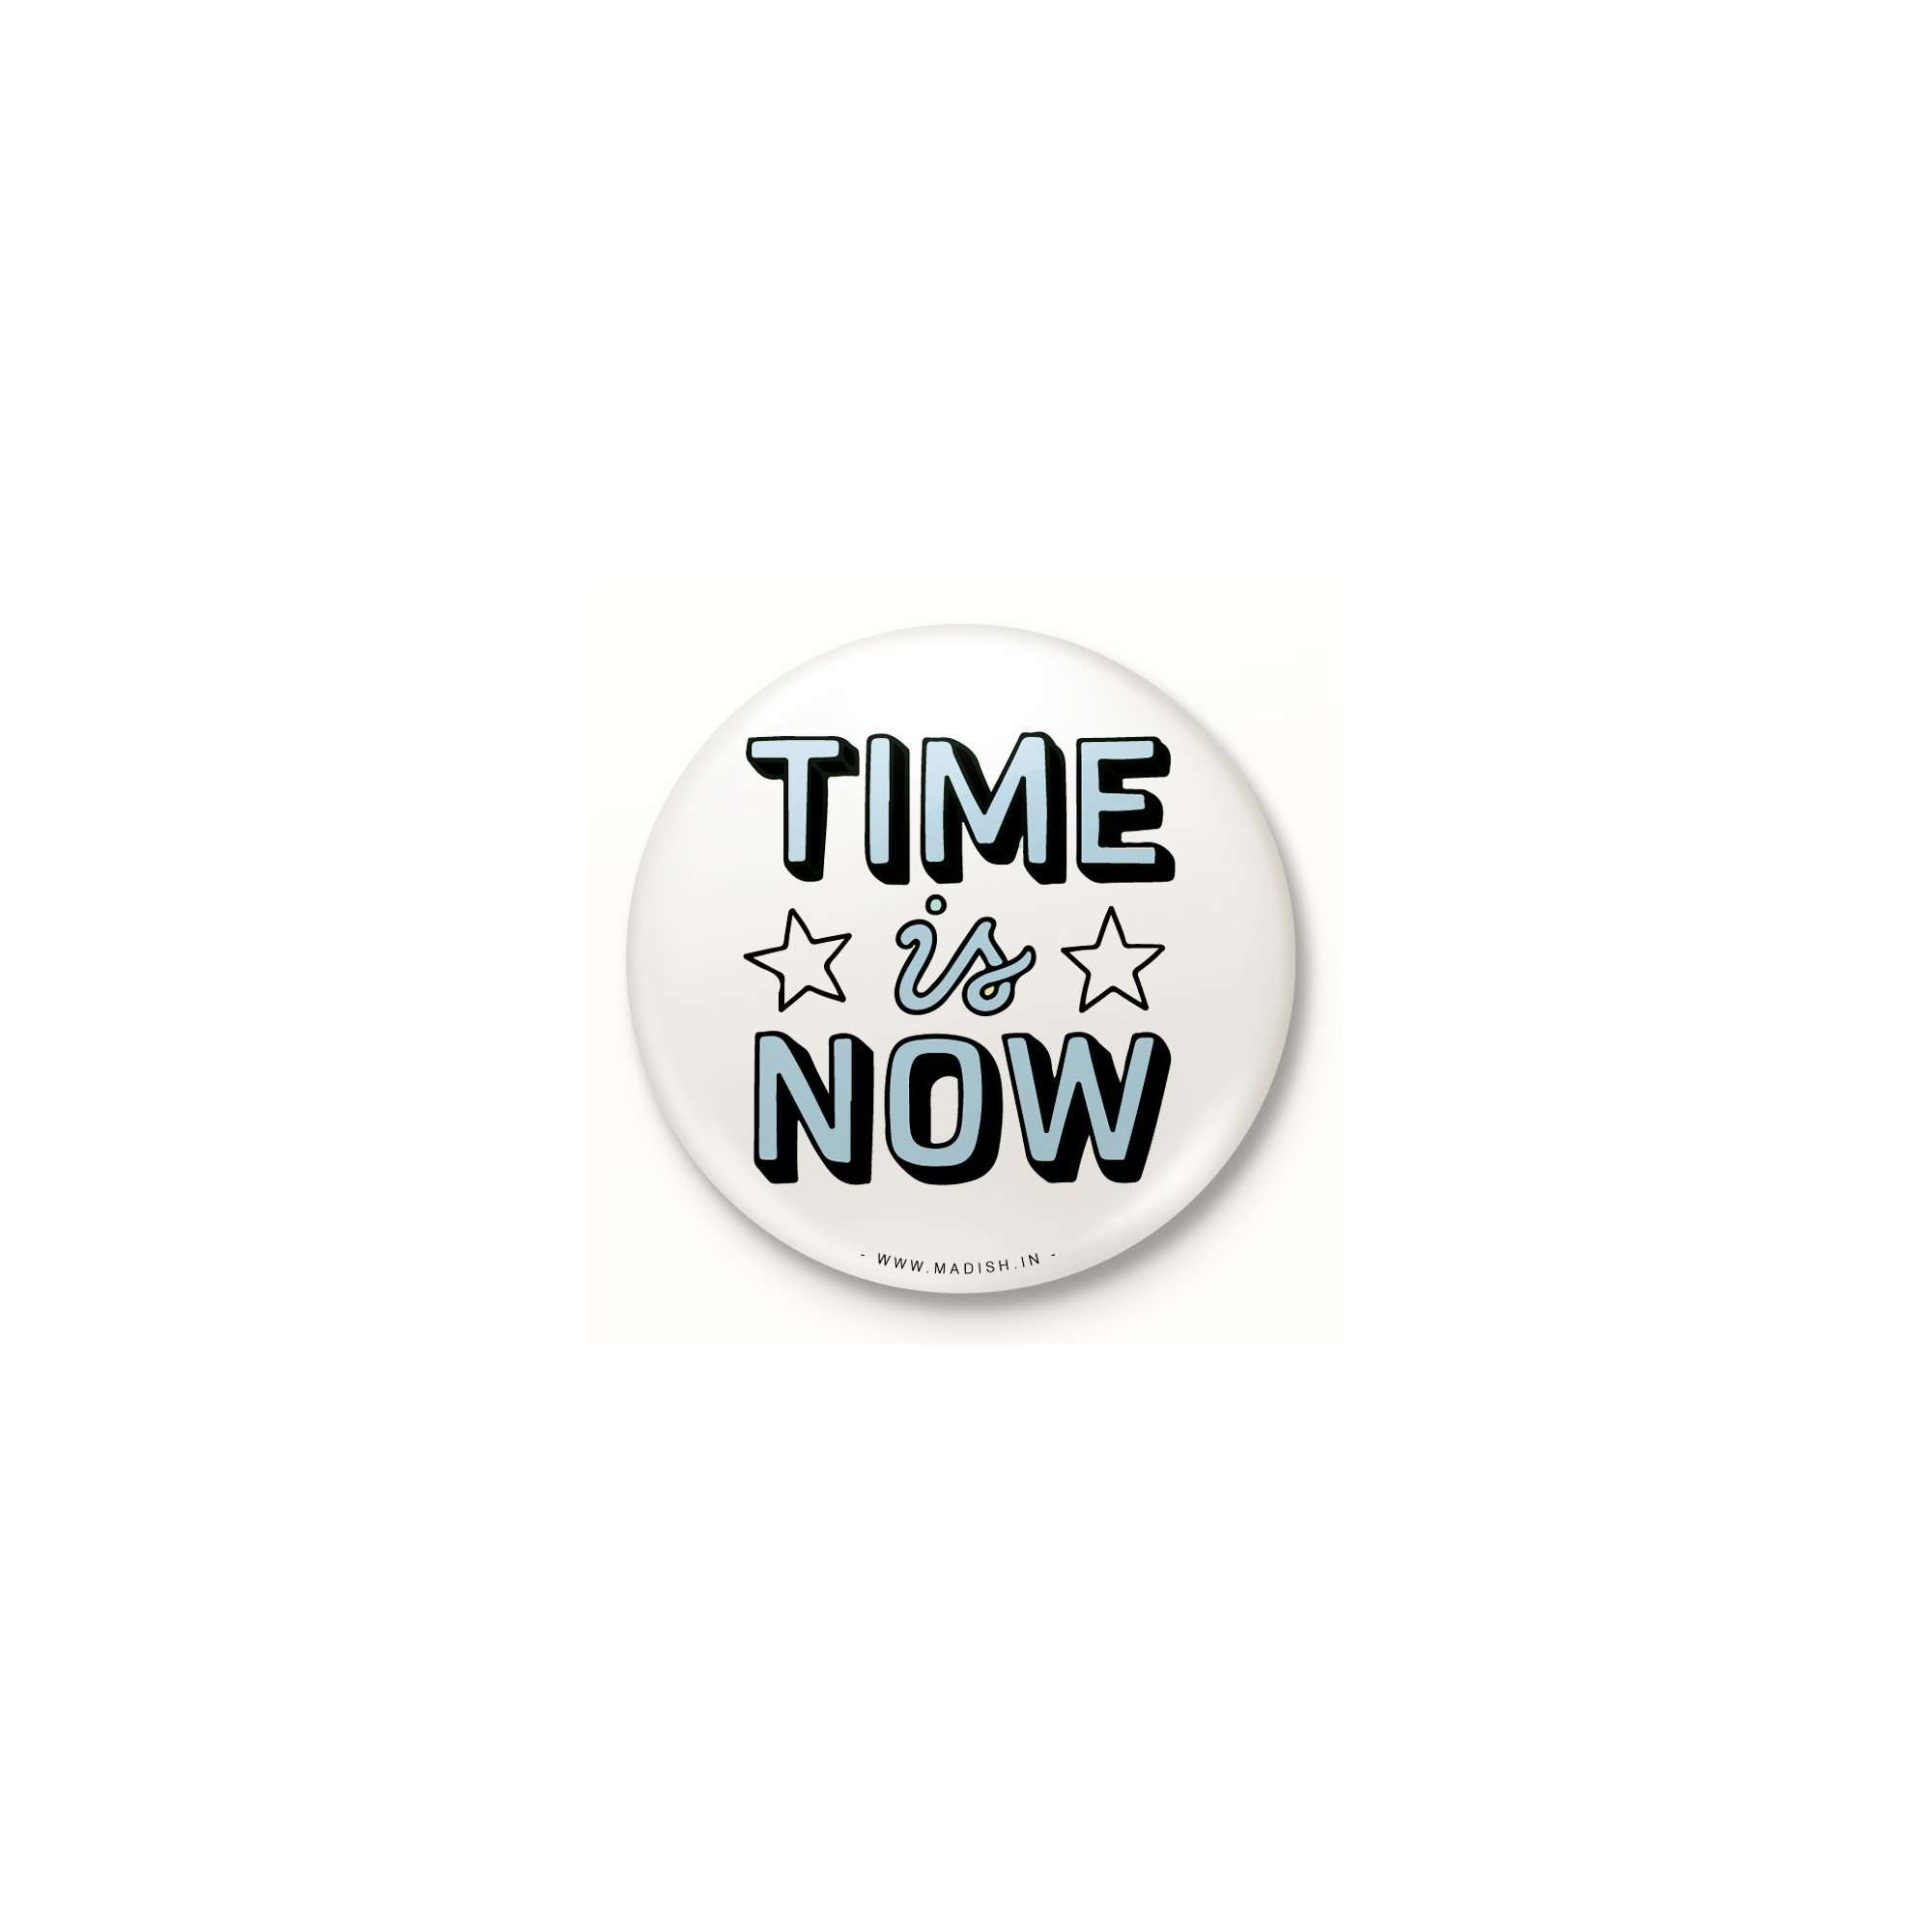 Time is Now Button Badge Accessories Madish